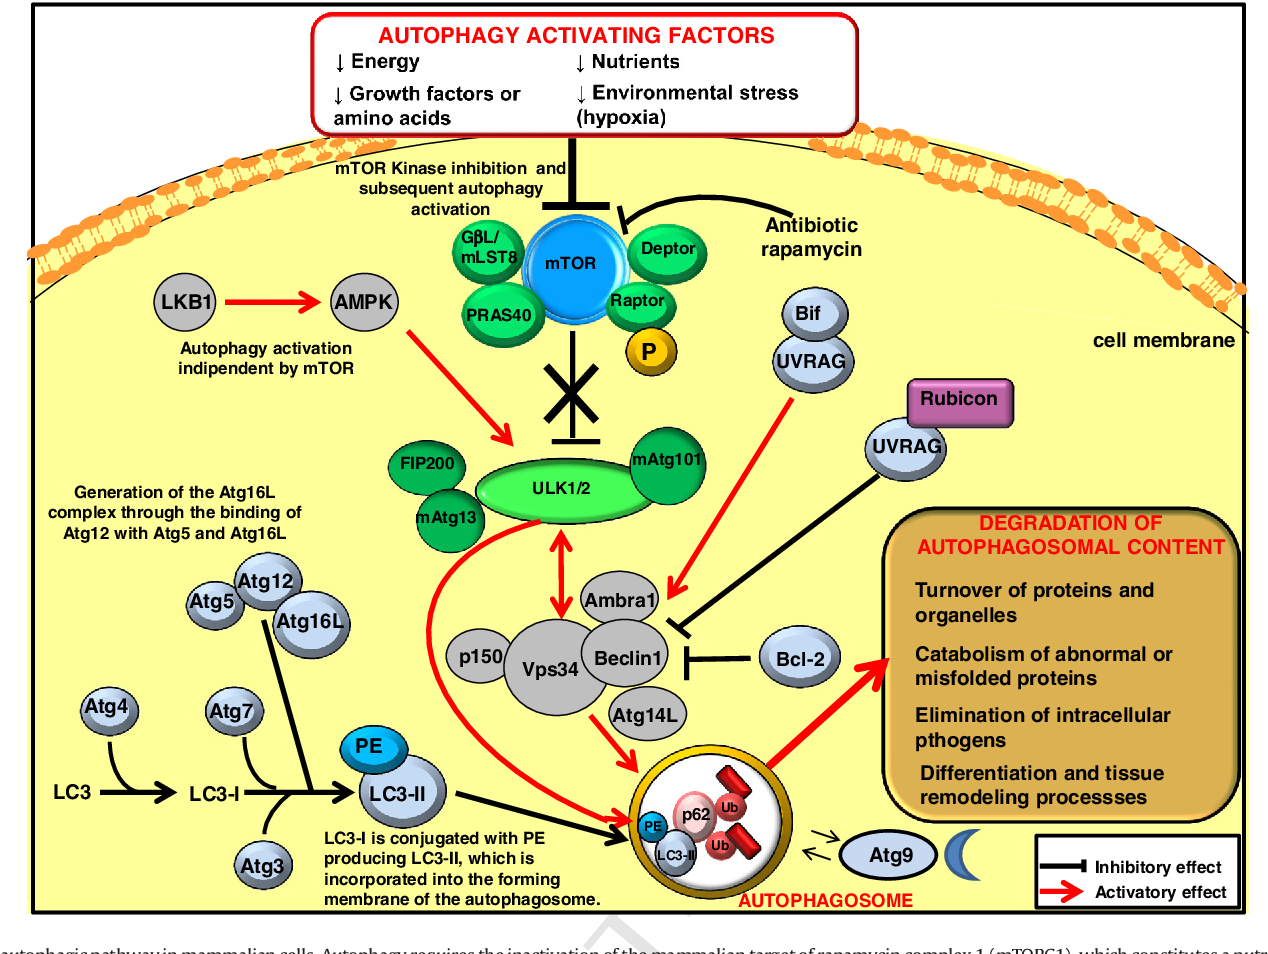 Recent insights on the putative role of autophagy in